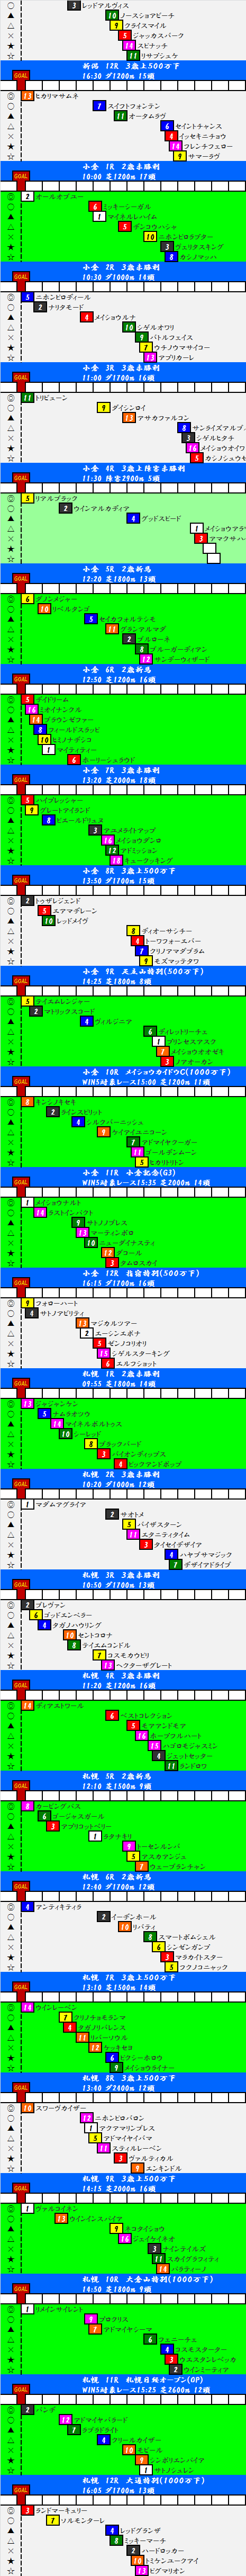 201408102.png